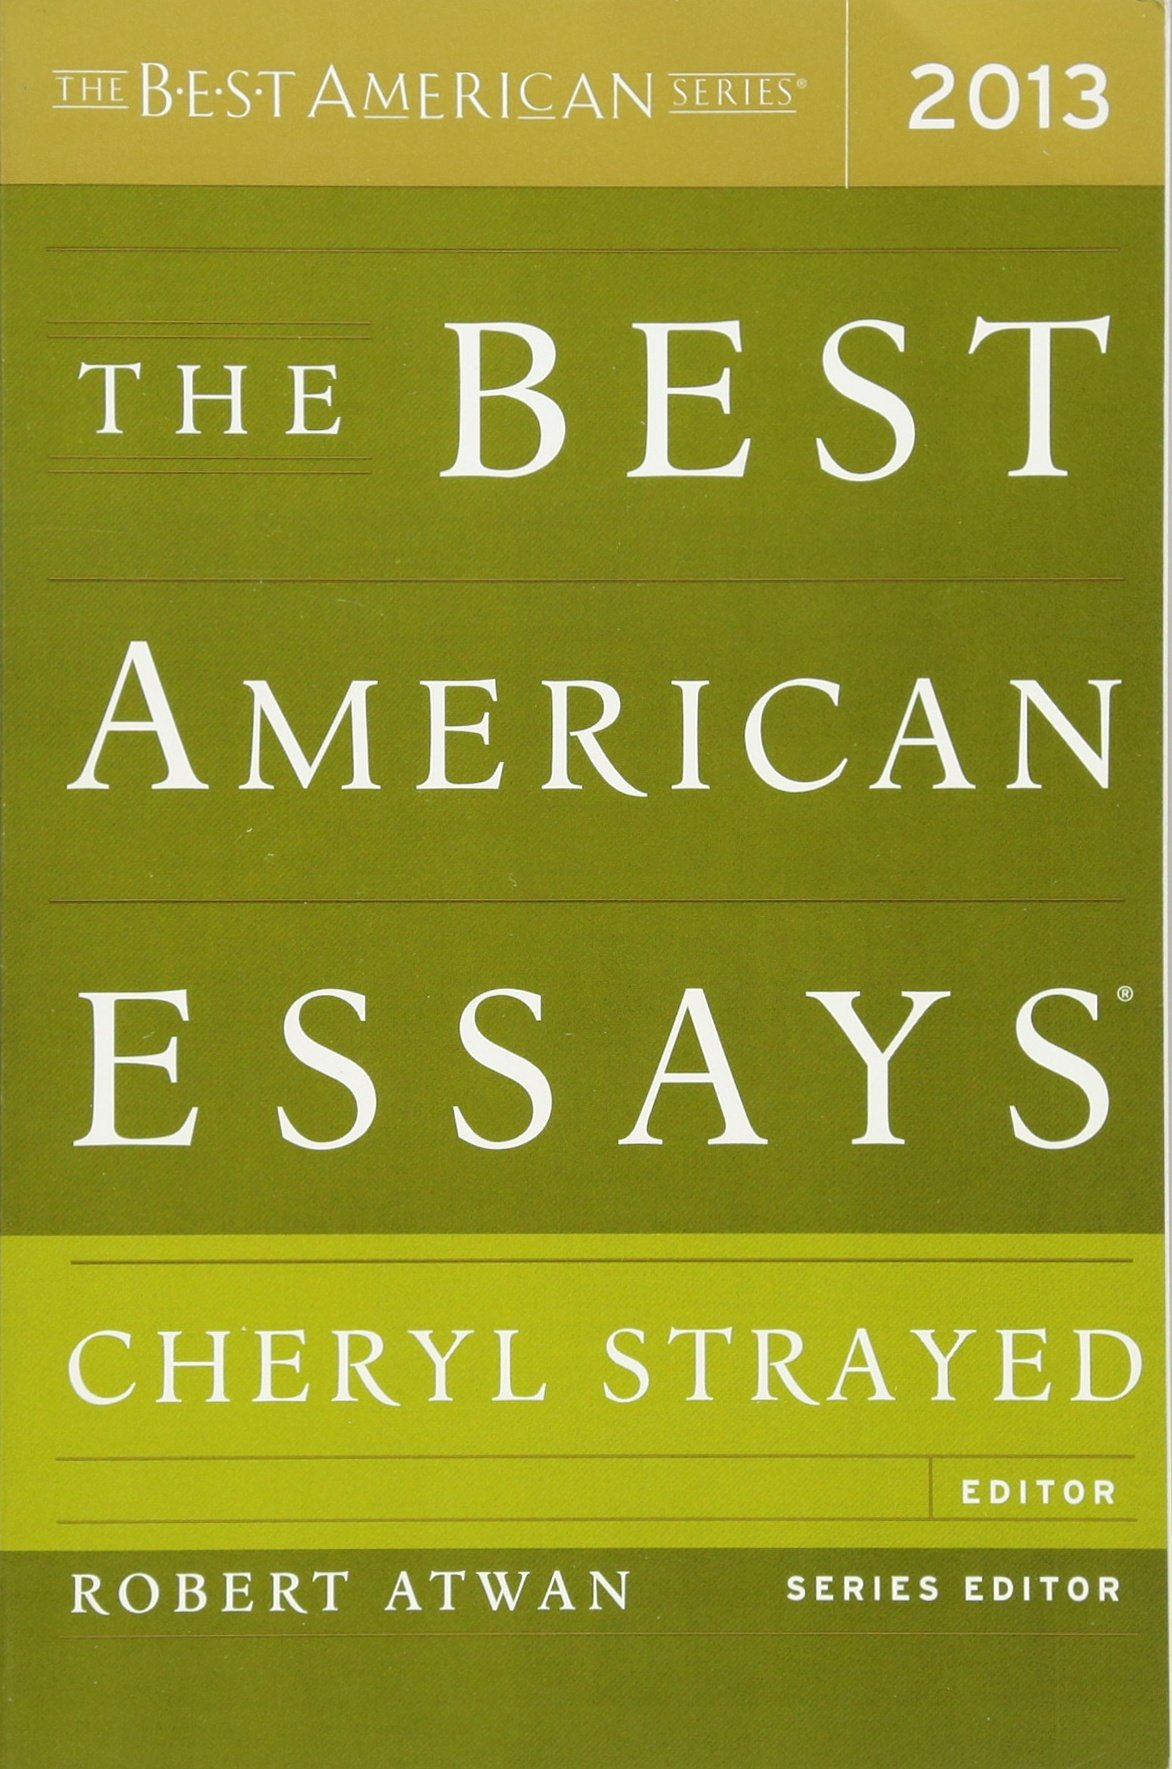 003 Essay Example The Best American Essays Phenomenal 2016 Pdf Download Audiobook Sparknotes Full